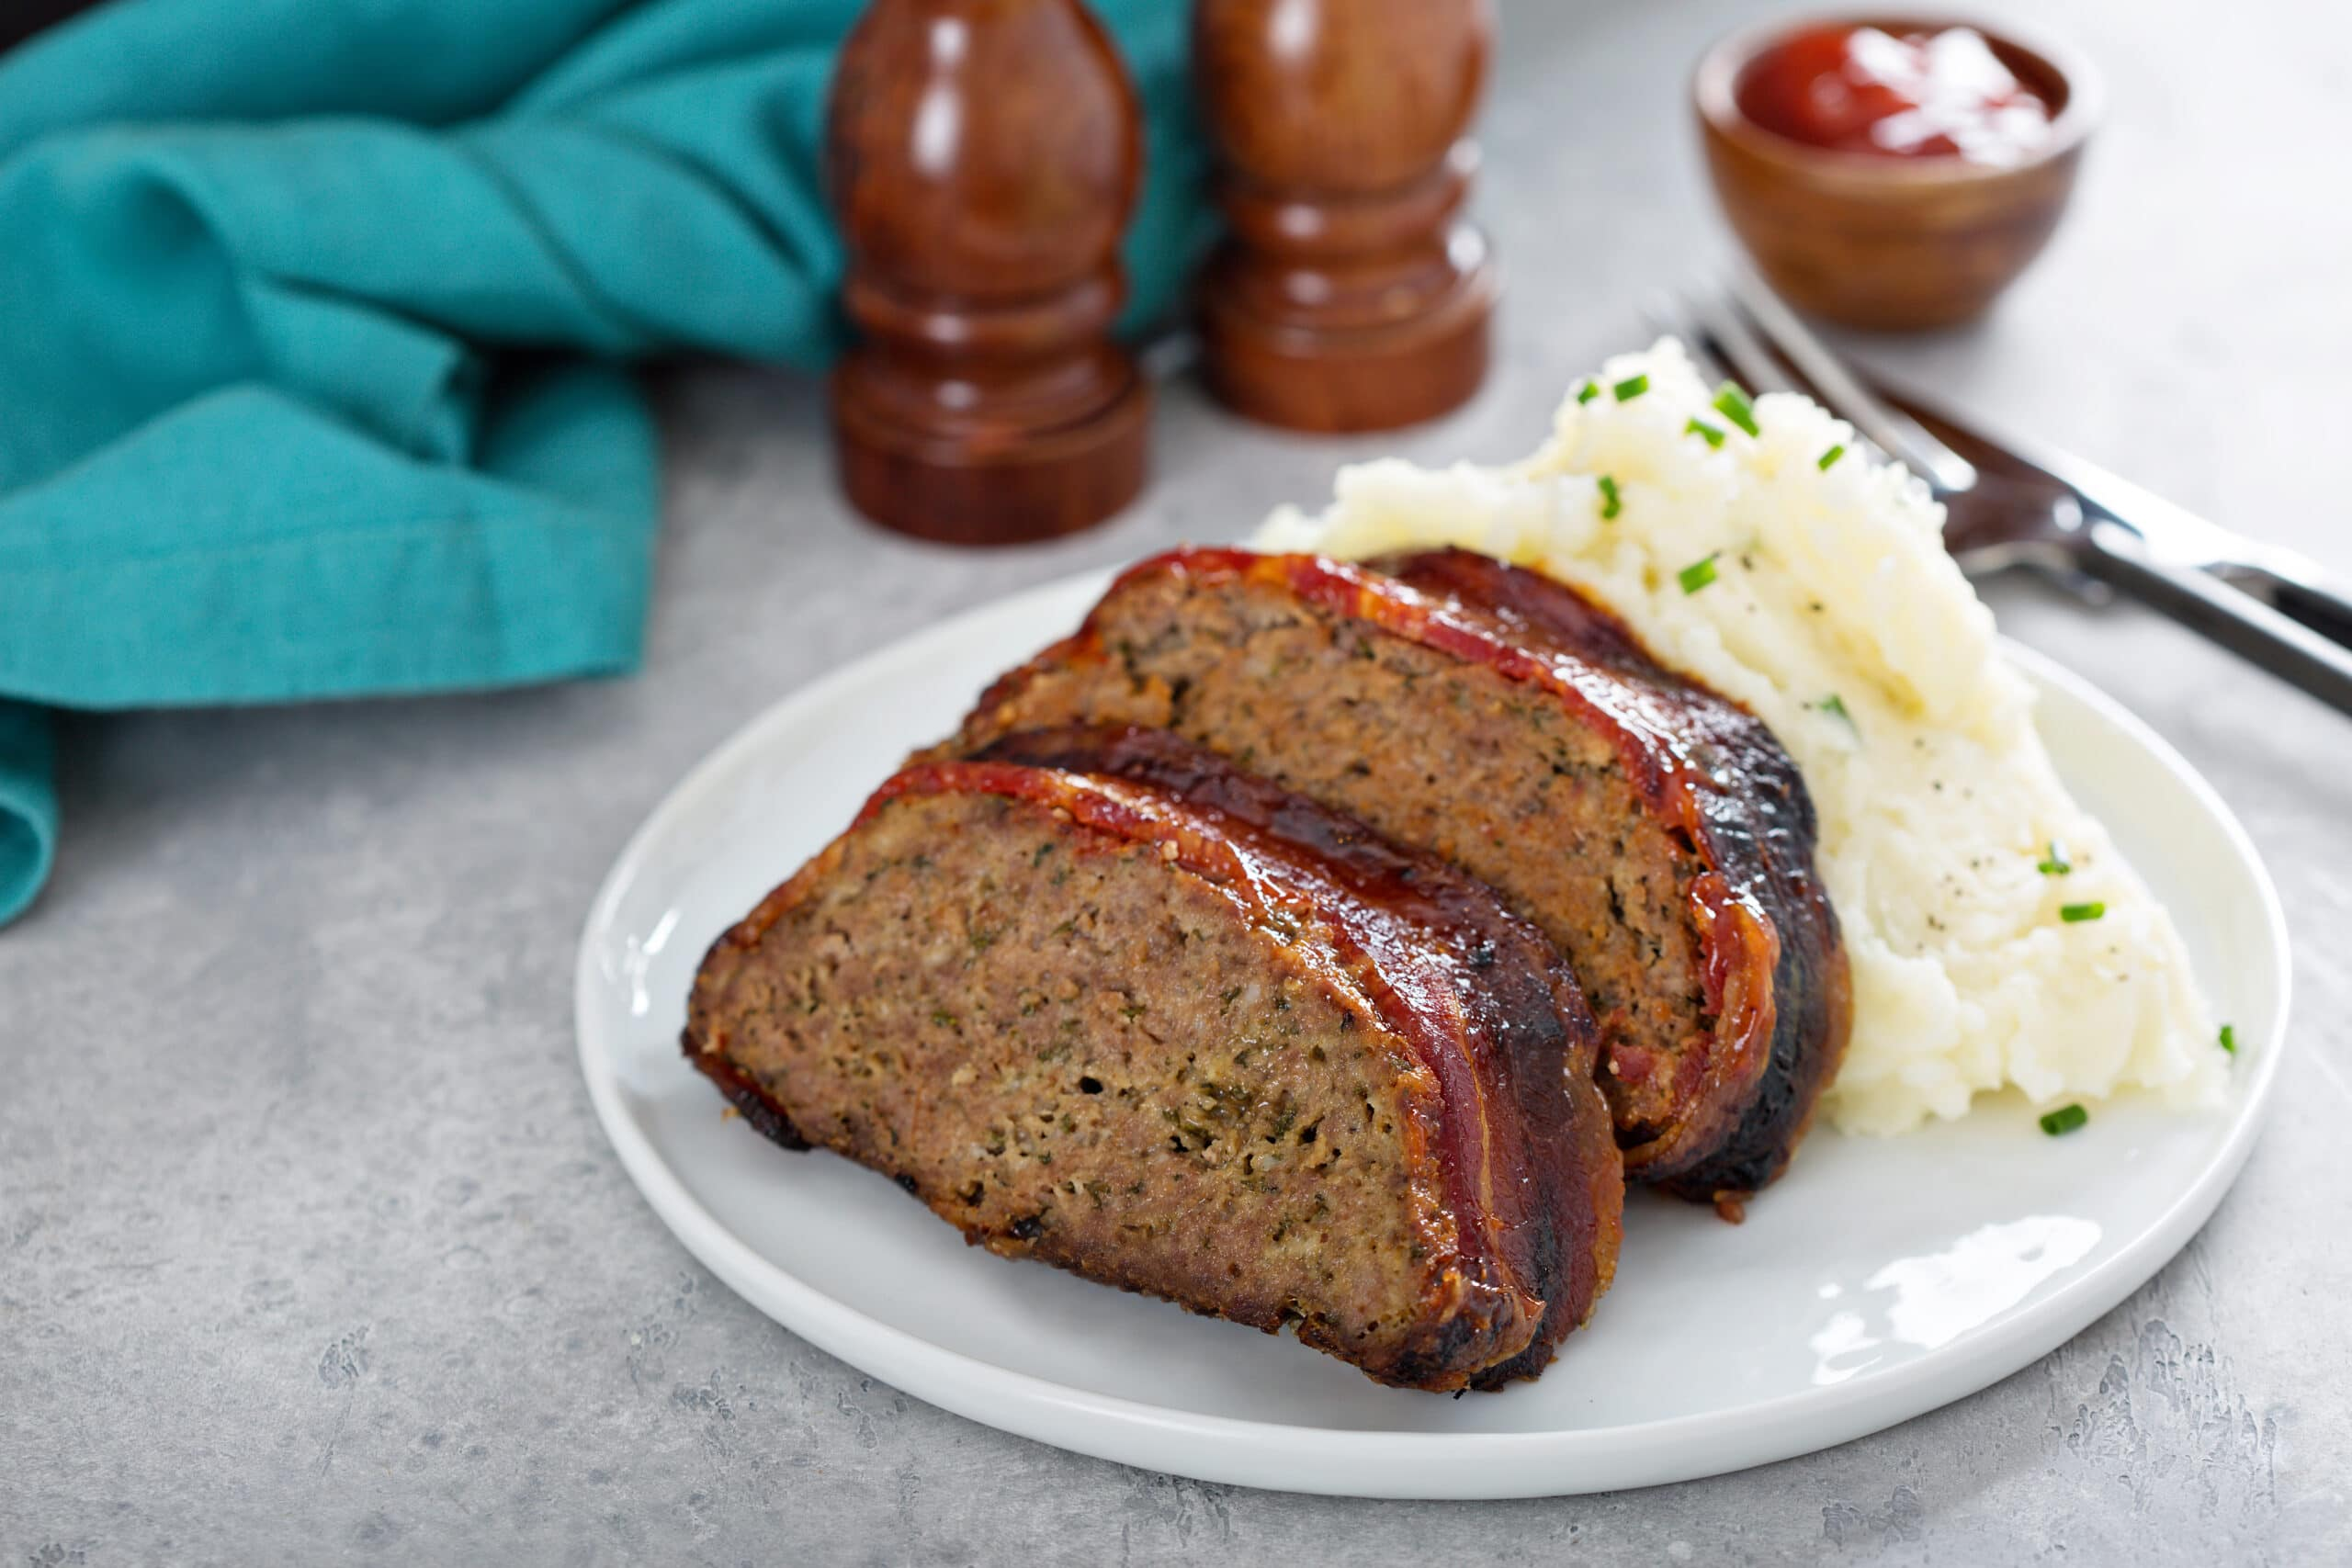 meatloaf wrapped in bacon